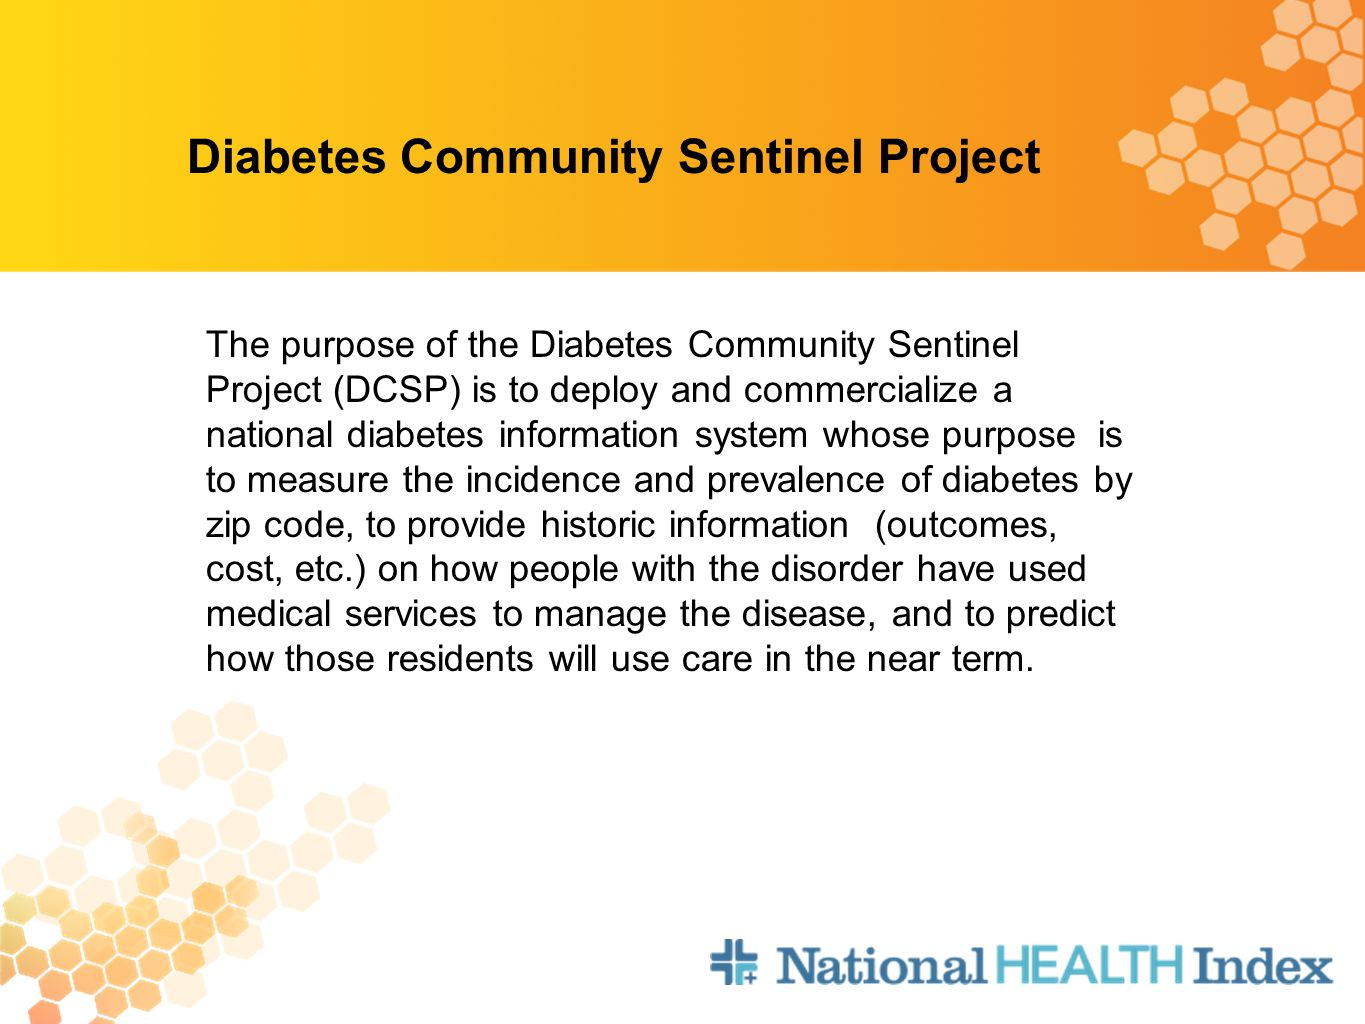 Diabetes Community Sentinel Project The purpose of the Diabetes Community Sentinel Project (DCSP) is to deploy and commercialize a national diabetes information system whose purpose is to measure the incidence and prevalence of diabetes by zip code, to provide historic information (outcomes, cost, etc.) on how people with the disorder have used medical services to manage the disease, and to predict how those residents will use care in the near term.